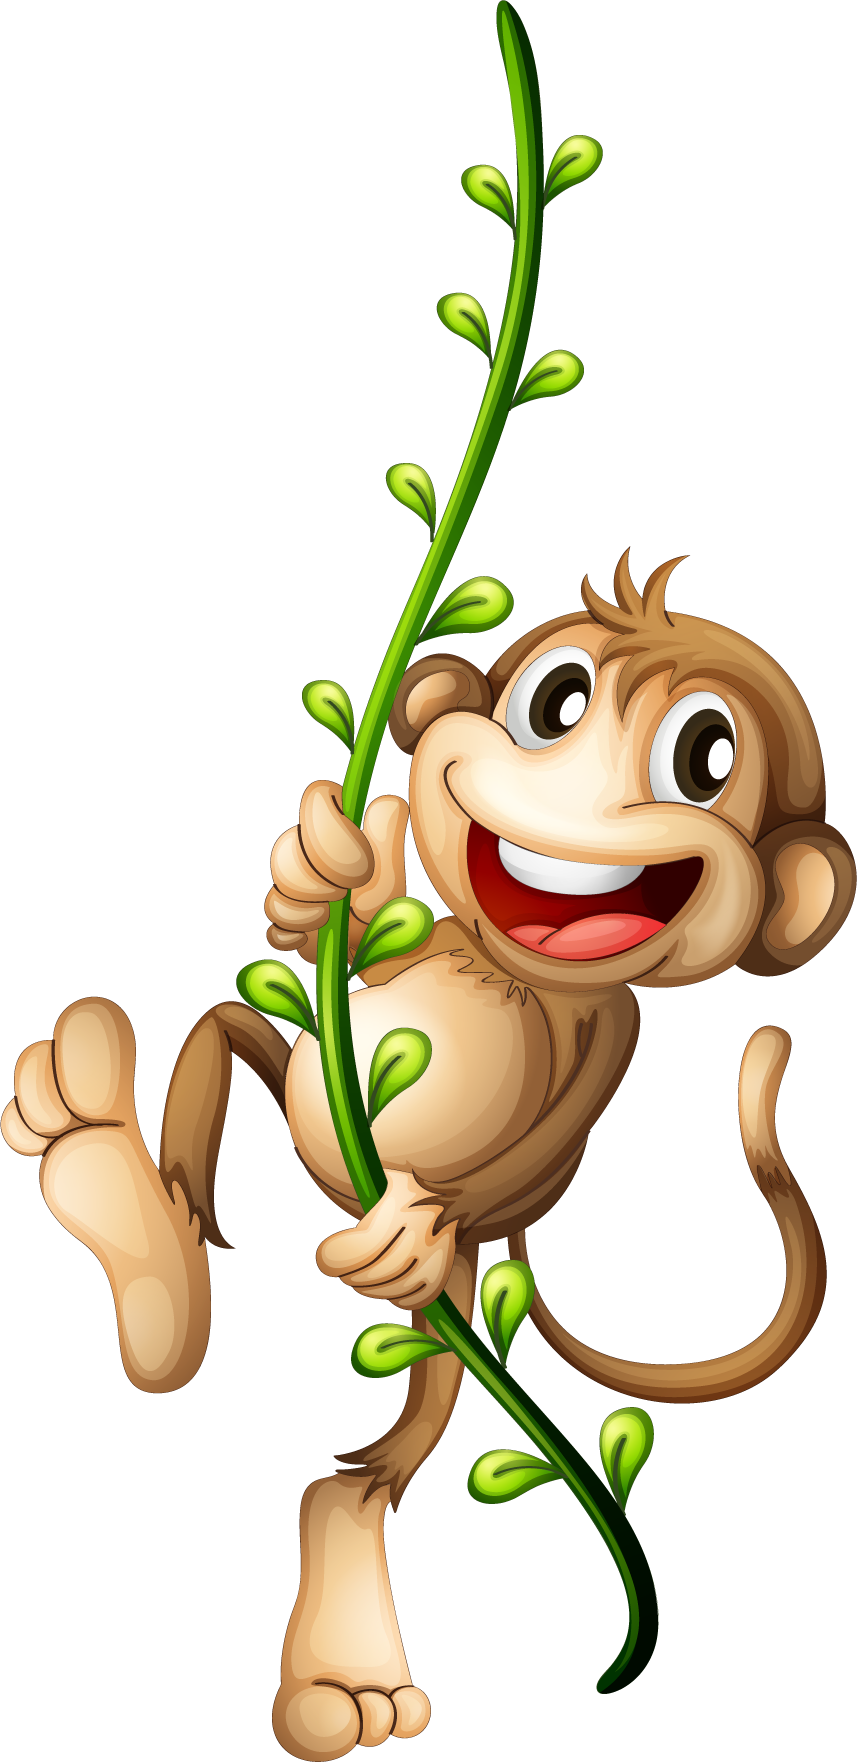 Nut clipart cartoon monkey. Png transparent free images